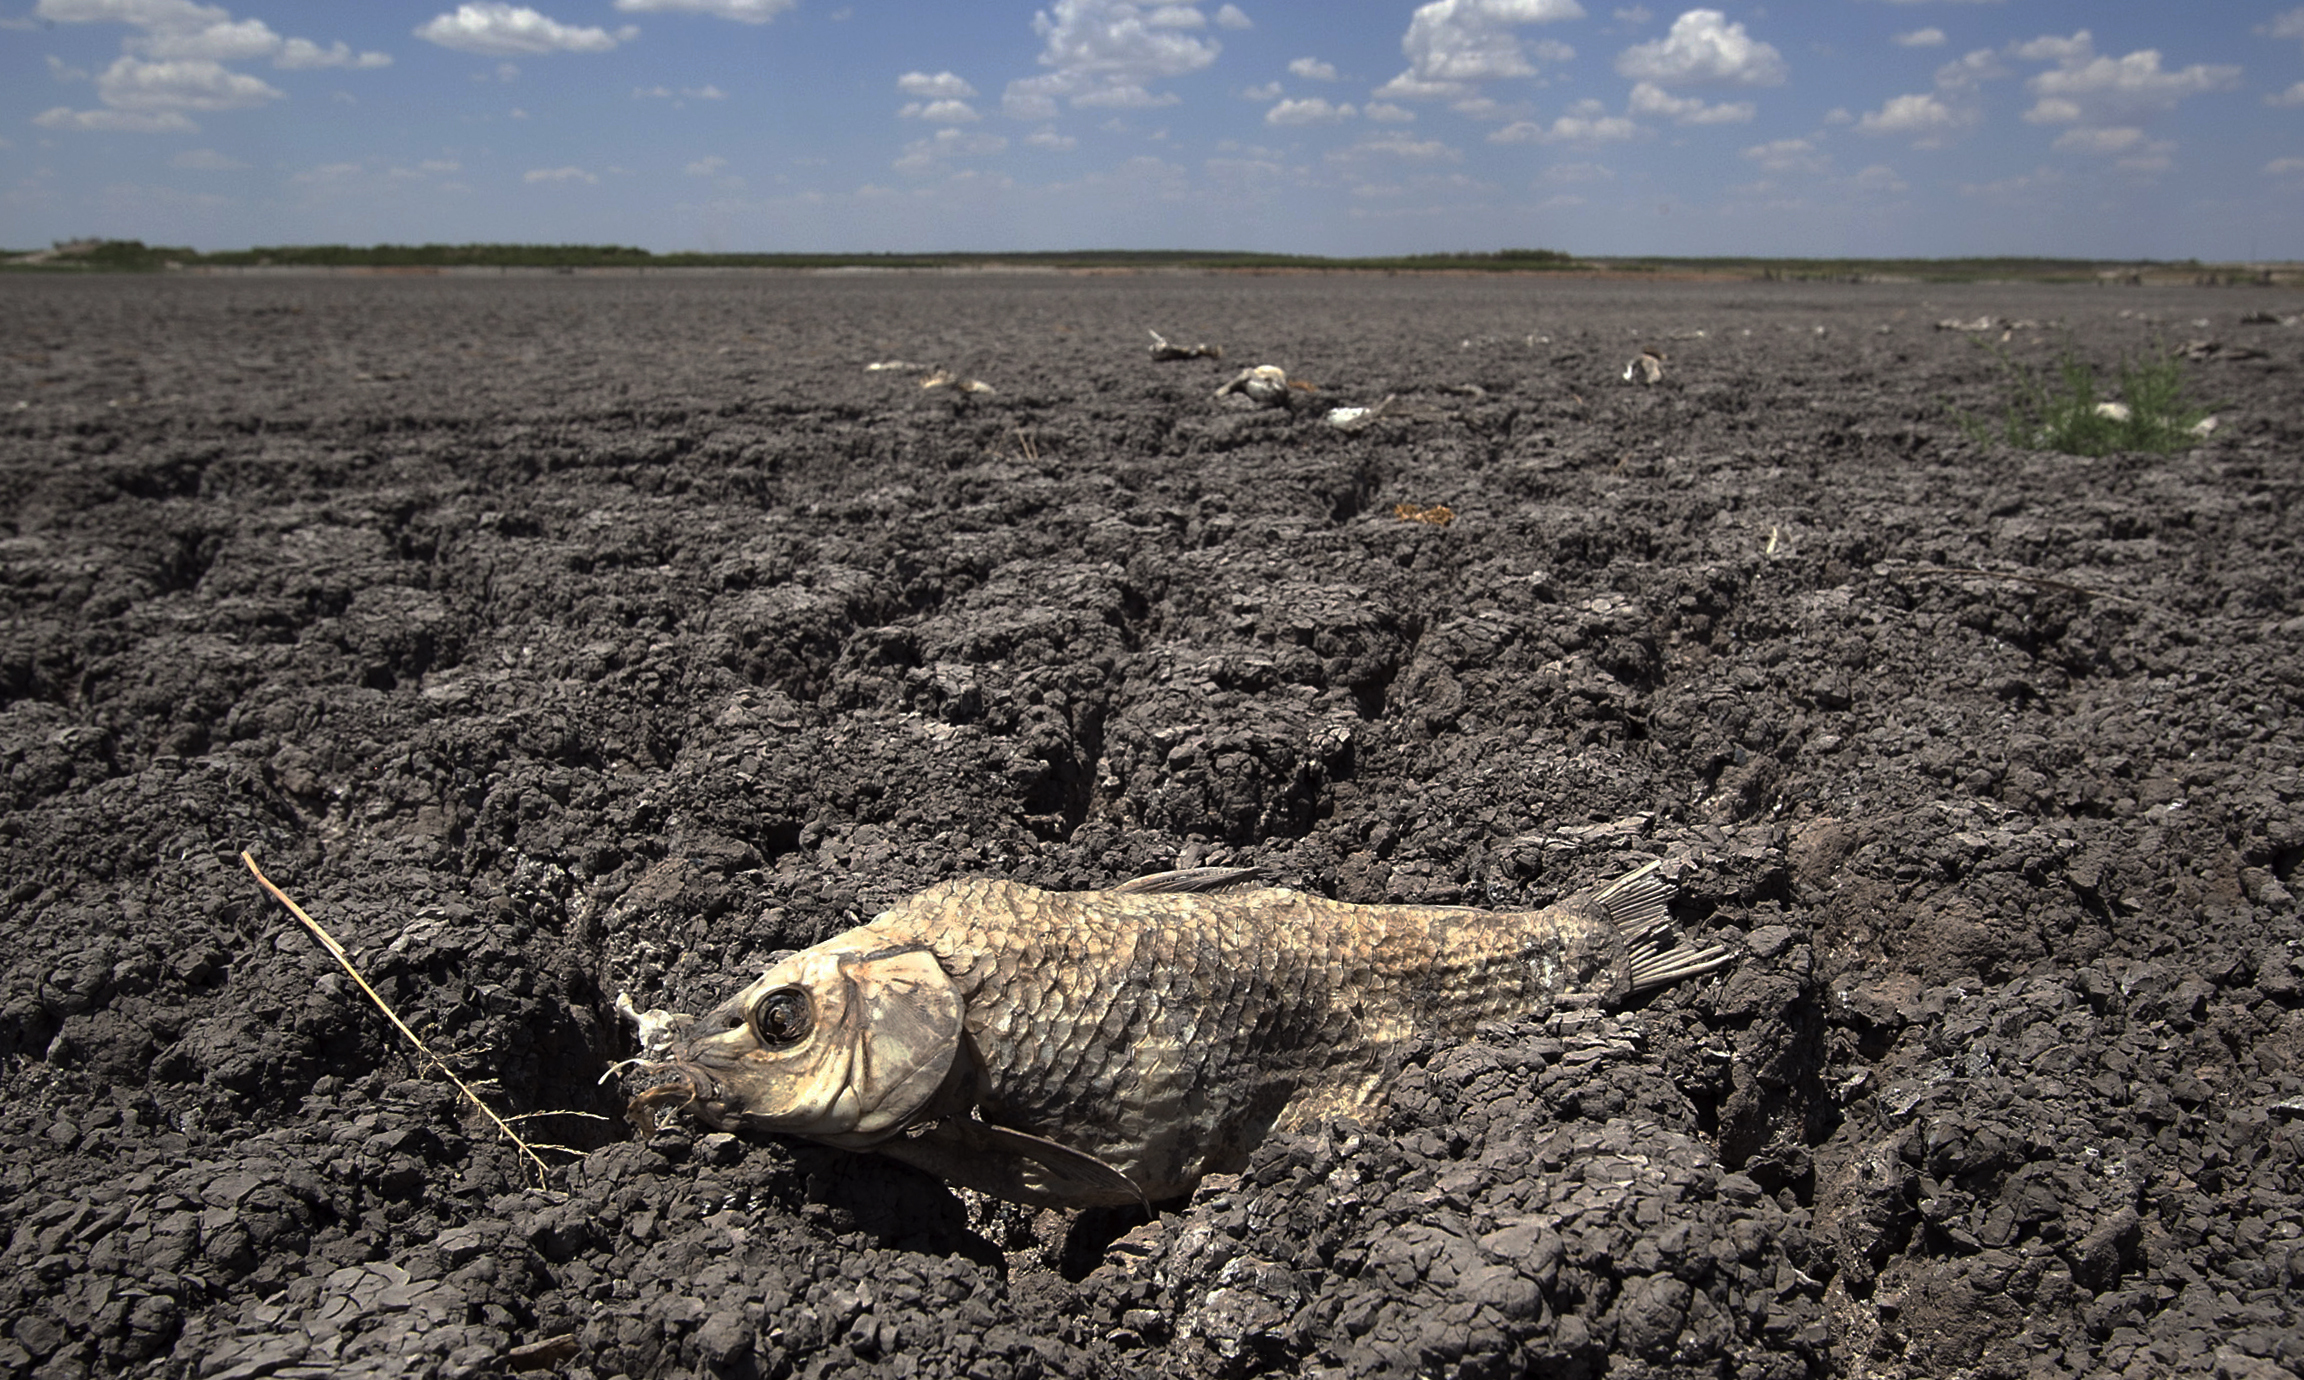 In this Wednesday, Aug. 3, 2011 file photo, the remains of a carp are seen on the dry lake bed of O.C. Fisher Lake in San Angelo, Texas. According to data released by the National Oceanic and Atmospheric Administration on Tuesday, May 4, 2021, the new United States normal is not just hotter, but wetter in the eastern and central parts of the nation and considerably drier in the West than just a decade earlier. (AP Photo/Tony Gutierrez)